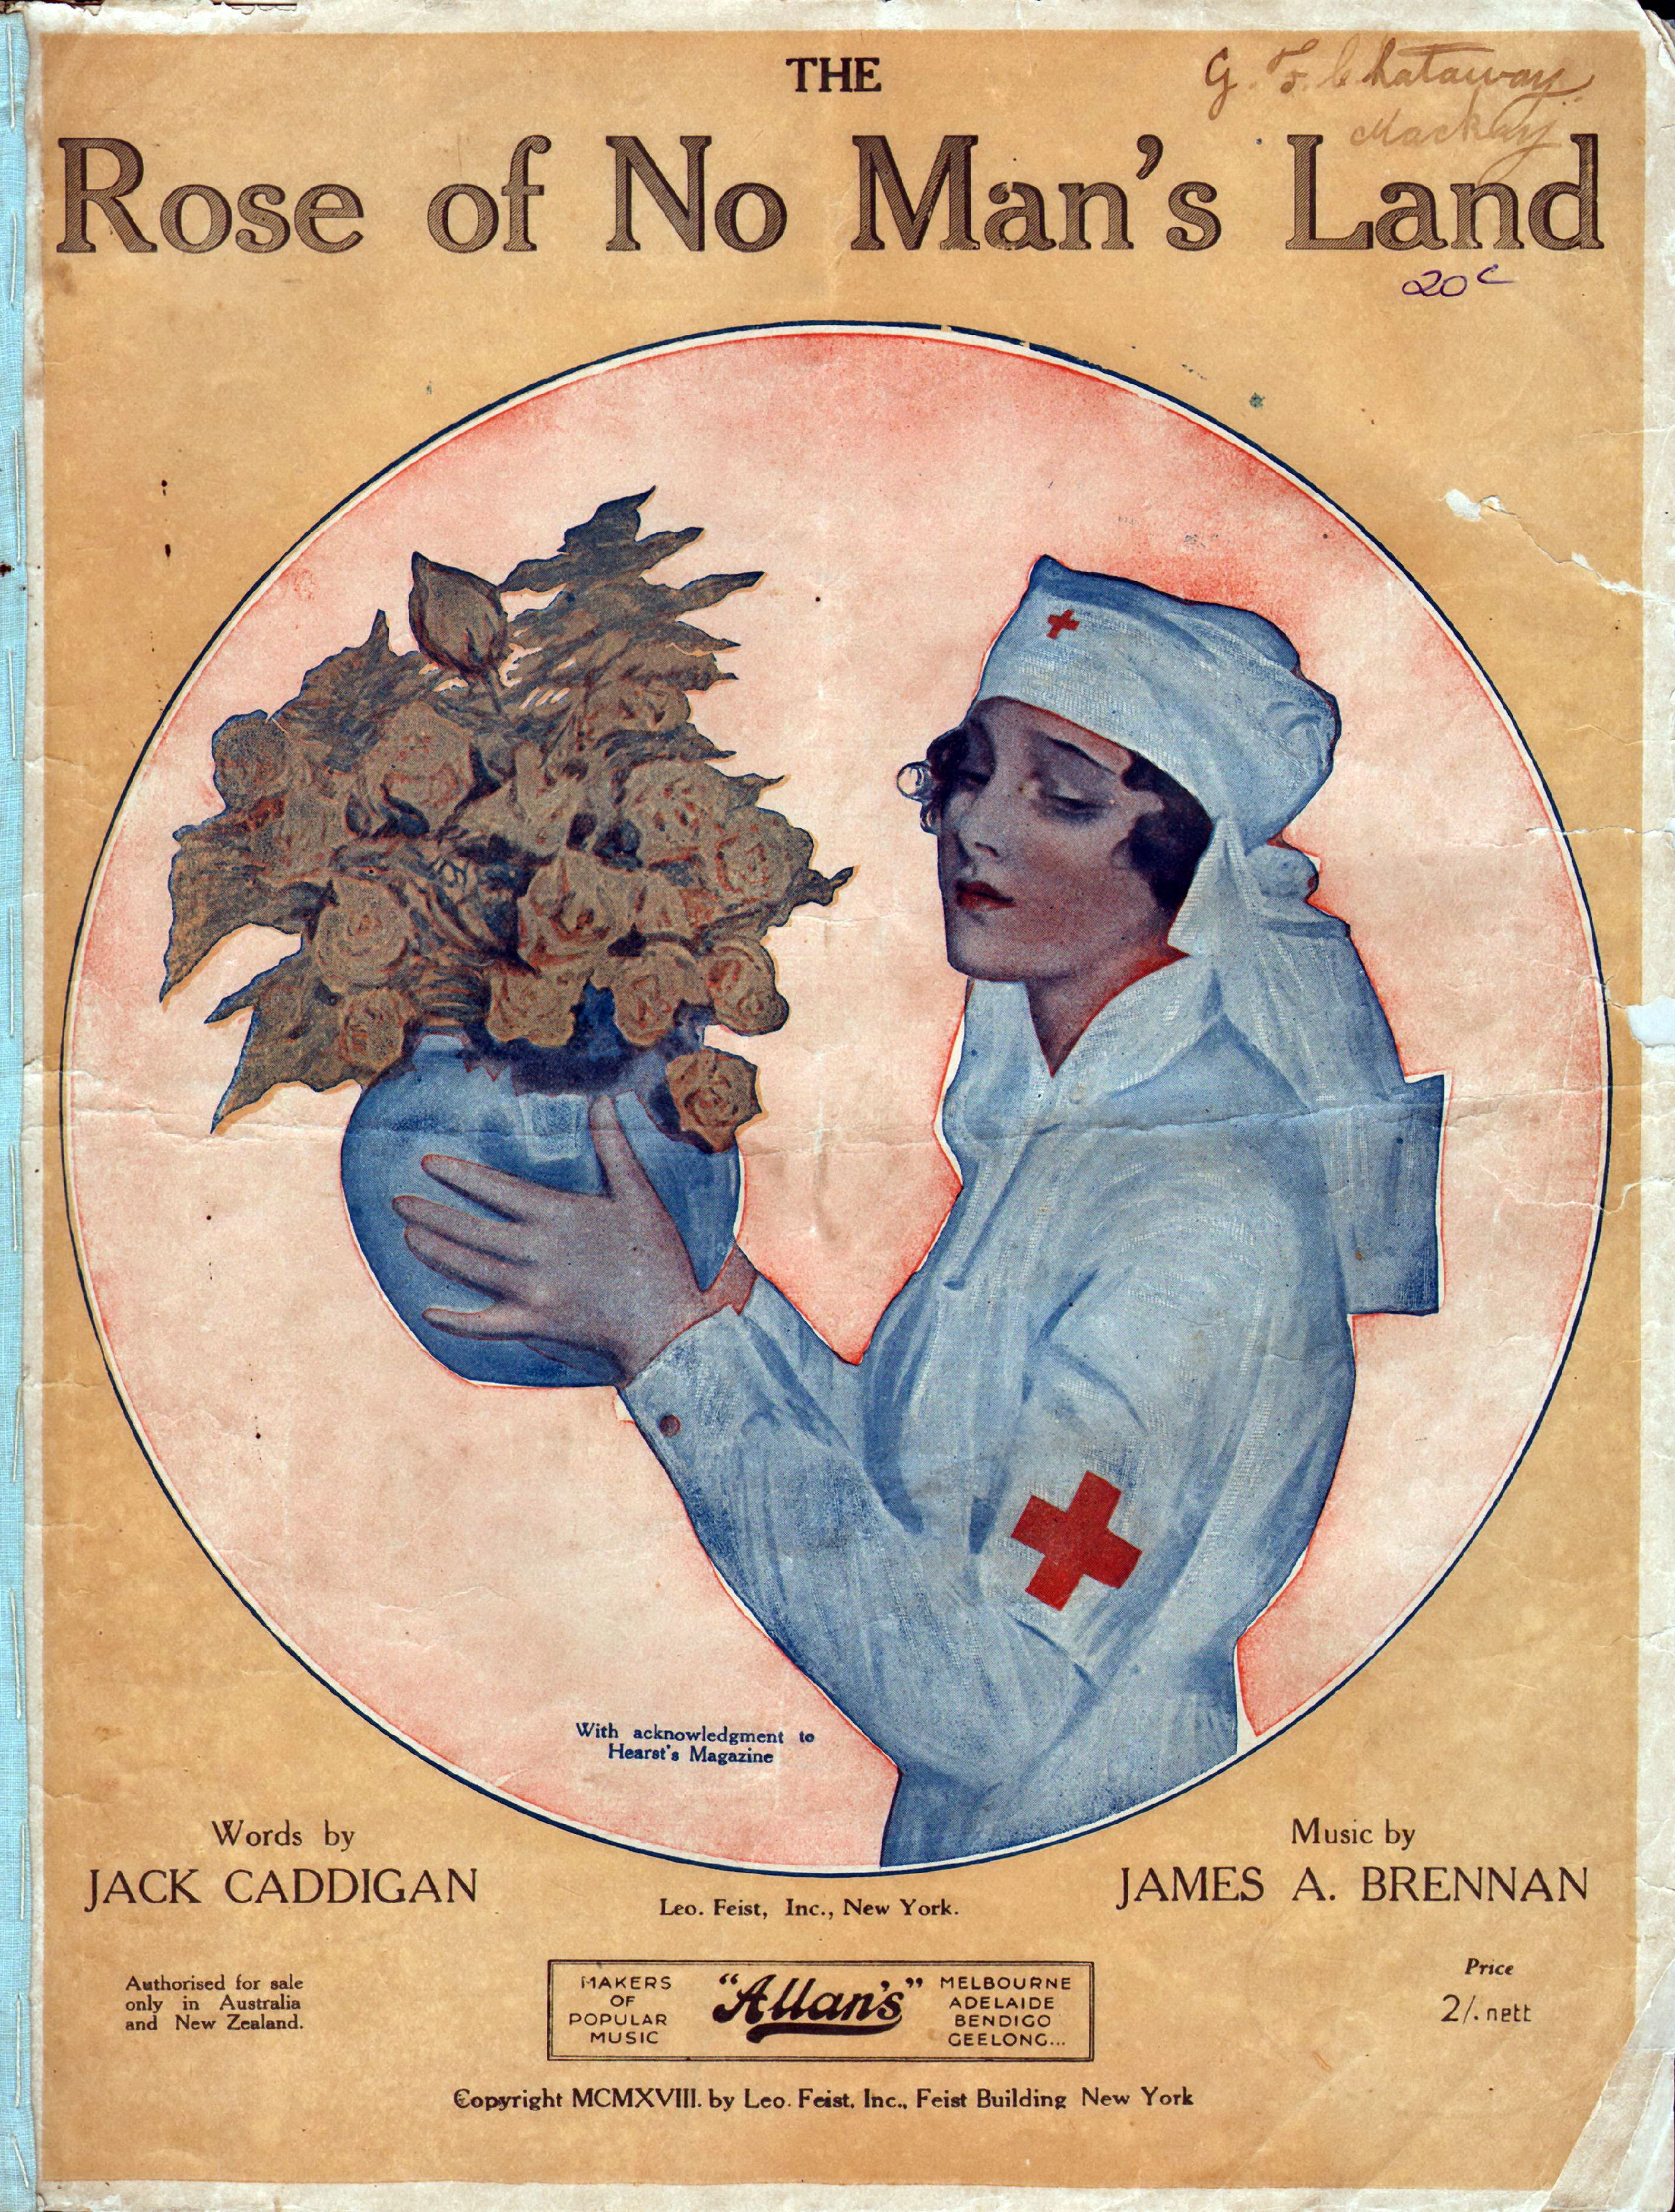 543bb6dd0 Rose Of No Man's Land. 1918. Words by Jack Caddigan. Music by James A.  Brennan.